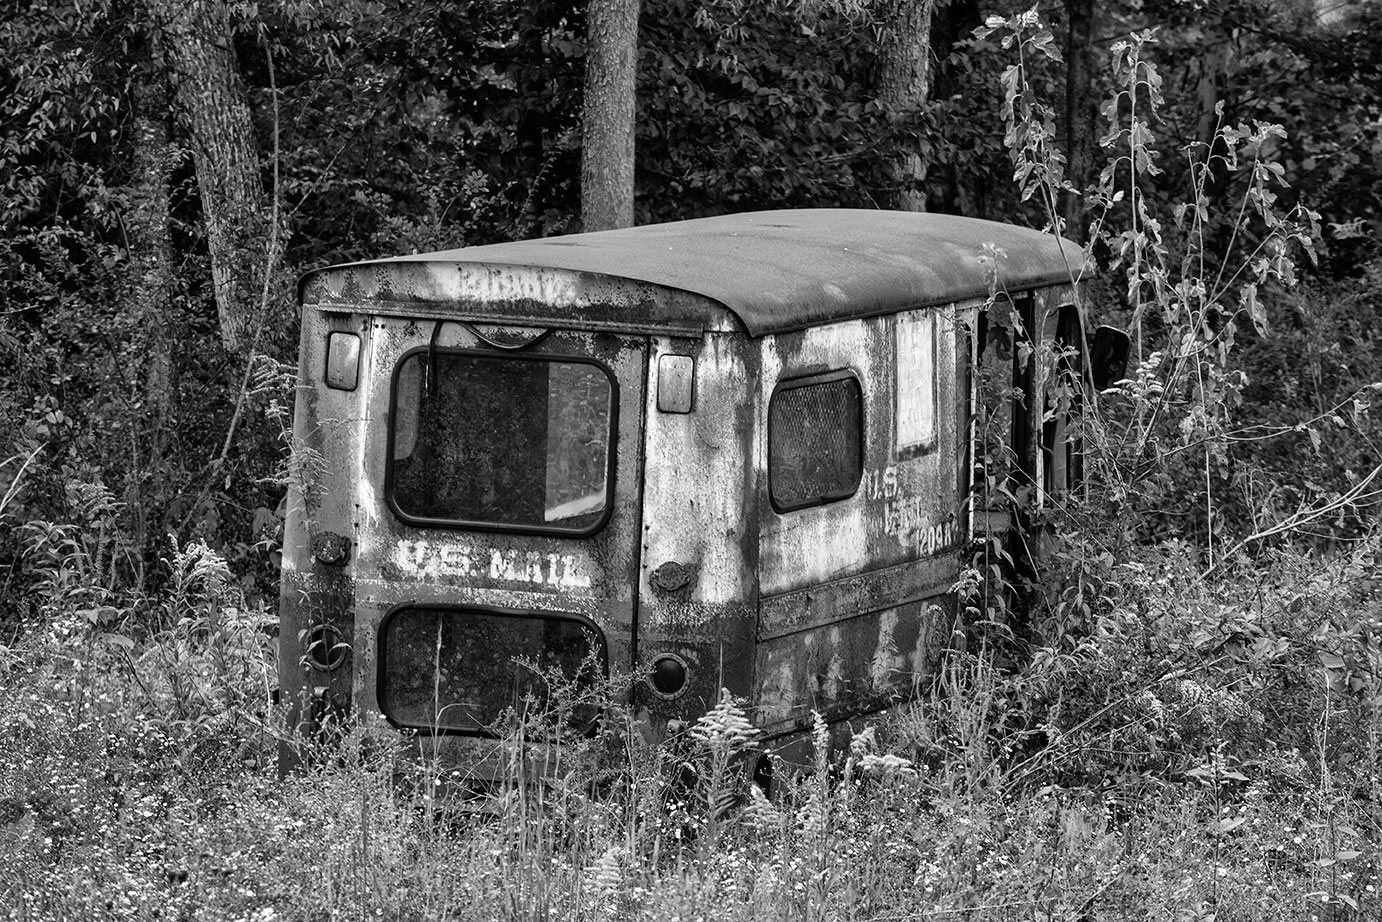 Abandoned mail carrier vehicle abandoned in an overgrown field, still showing its faded US Mail markings.